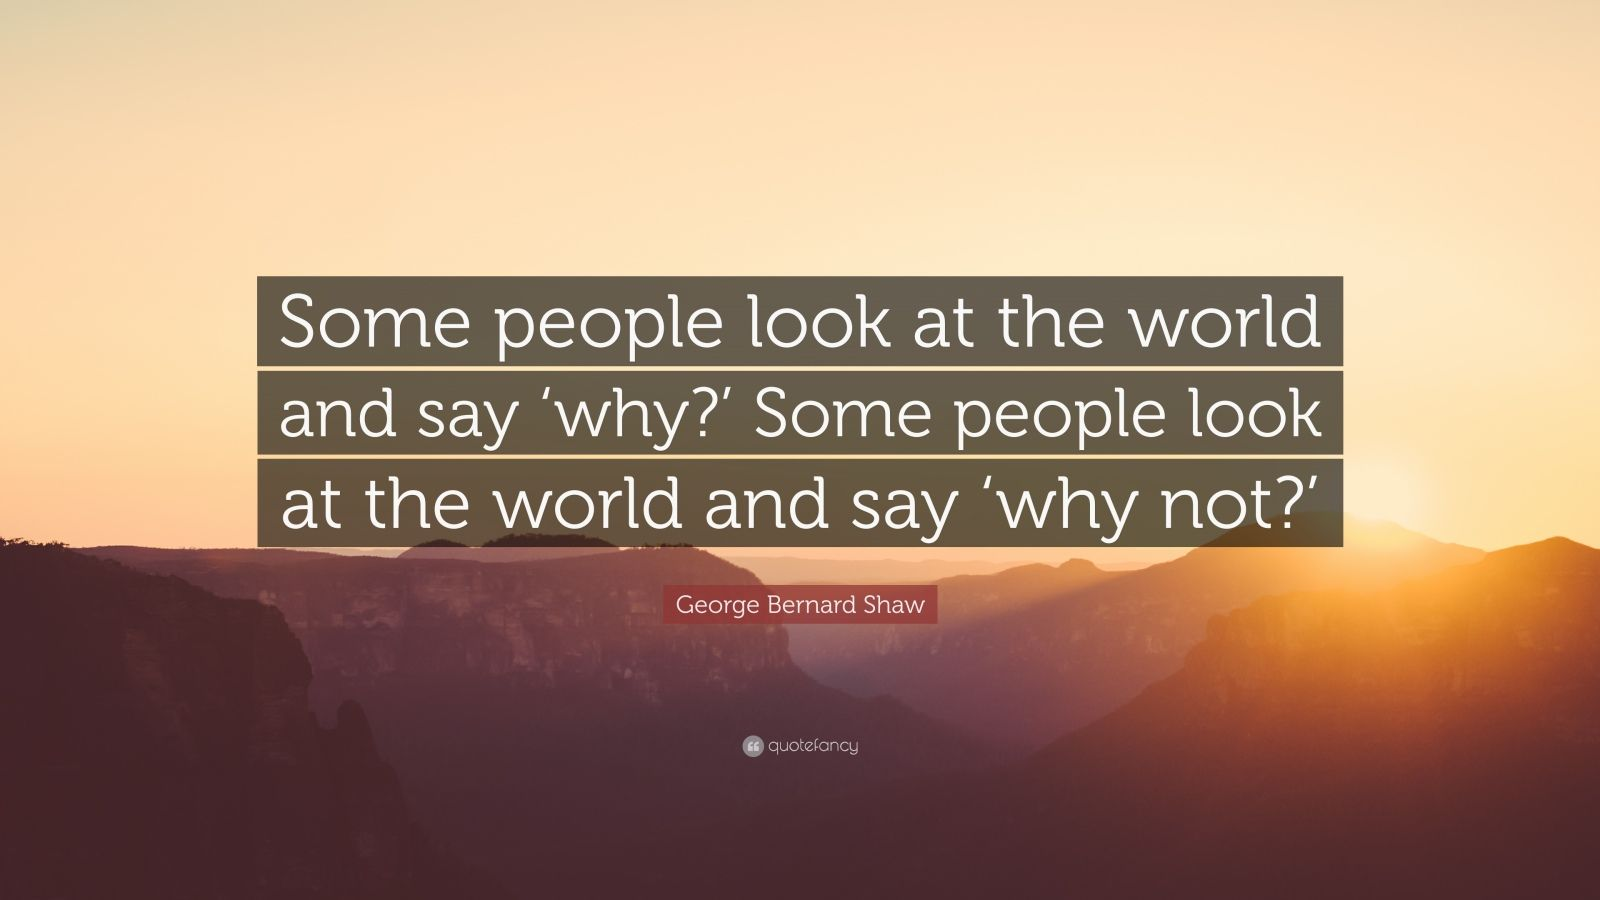 "George Bernard Shaw Quote: ""Some people look at the world and say 'why?' Some people look at the world and say 'why not?'"""